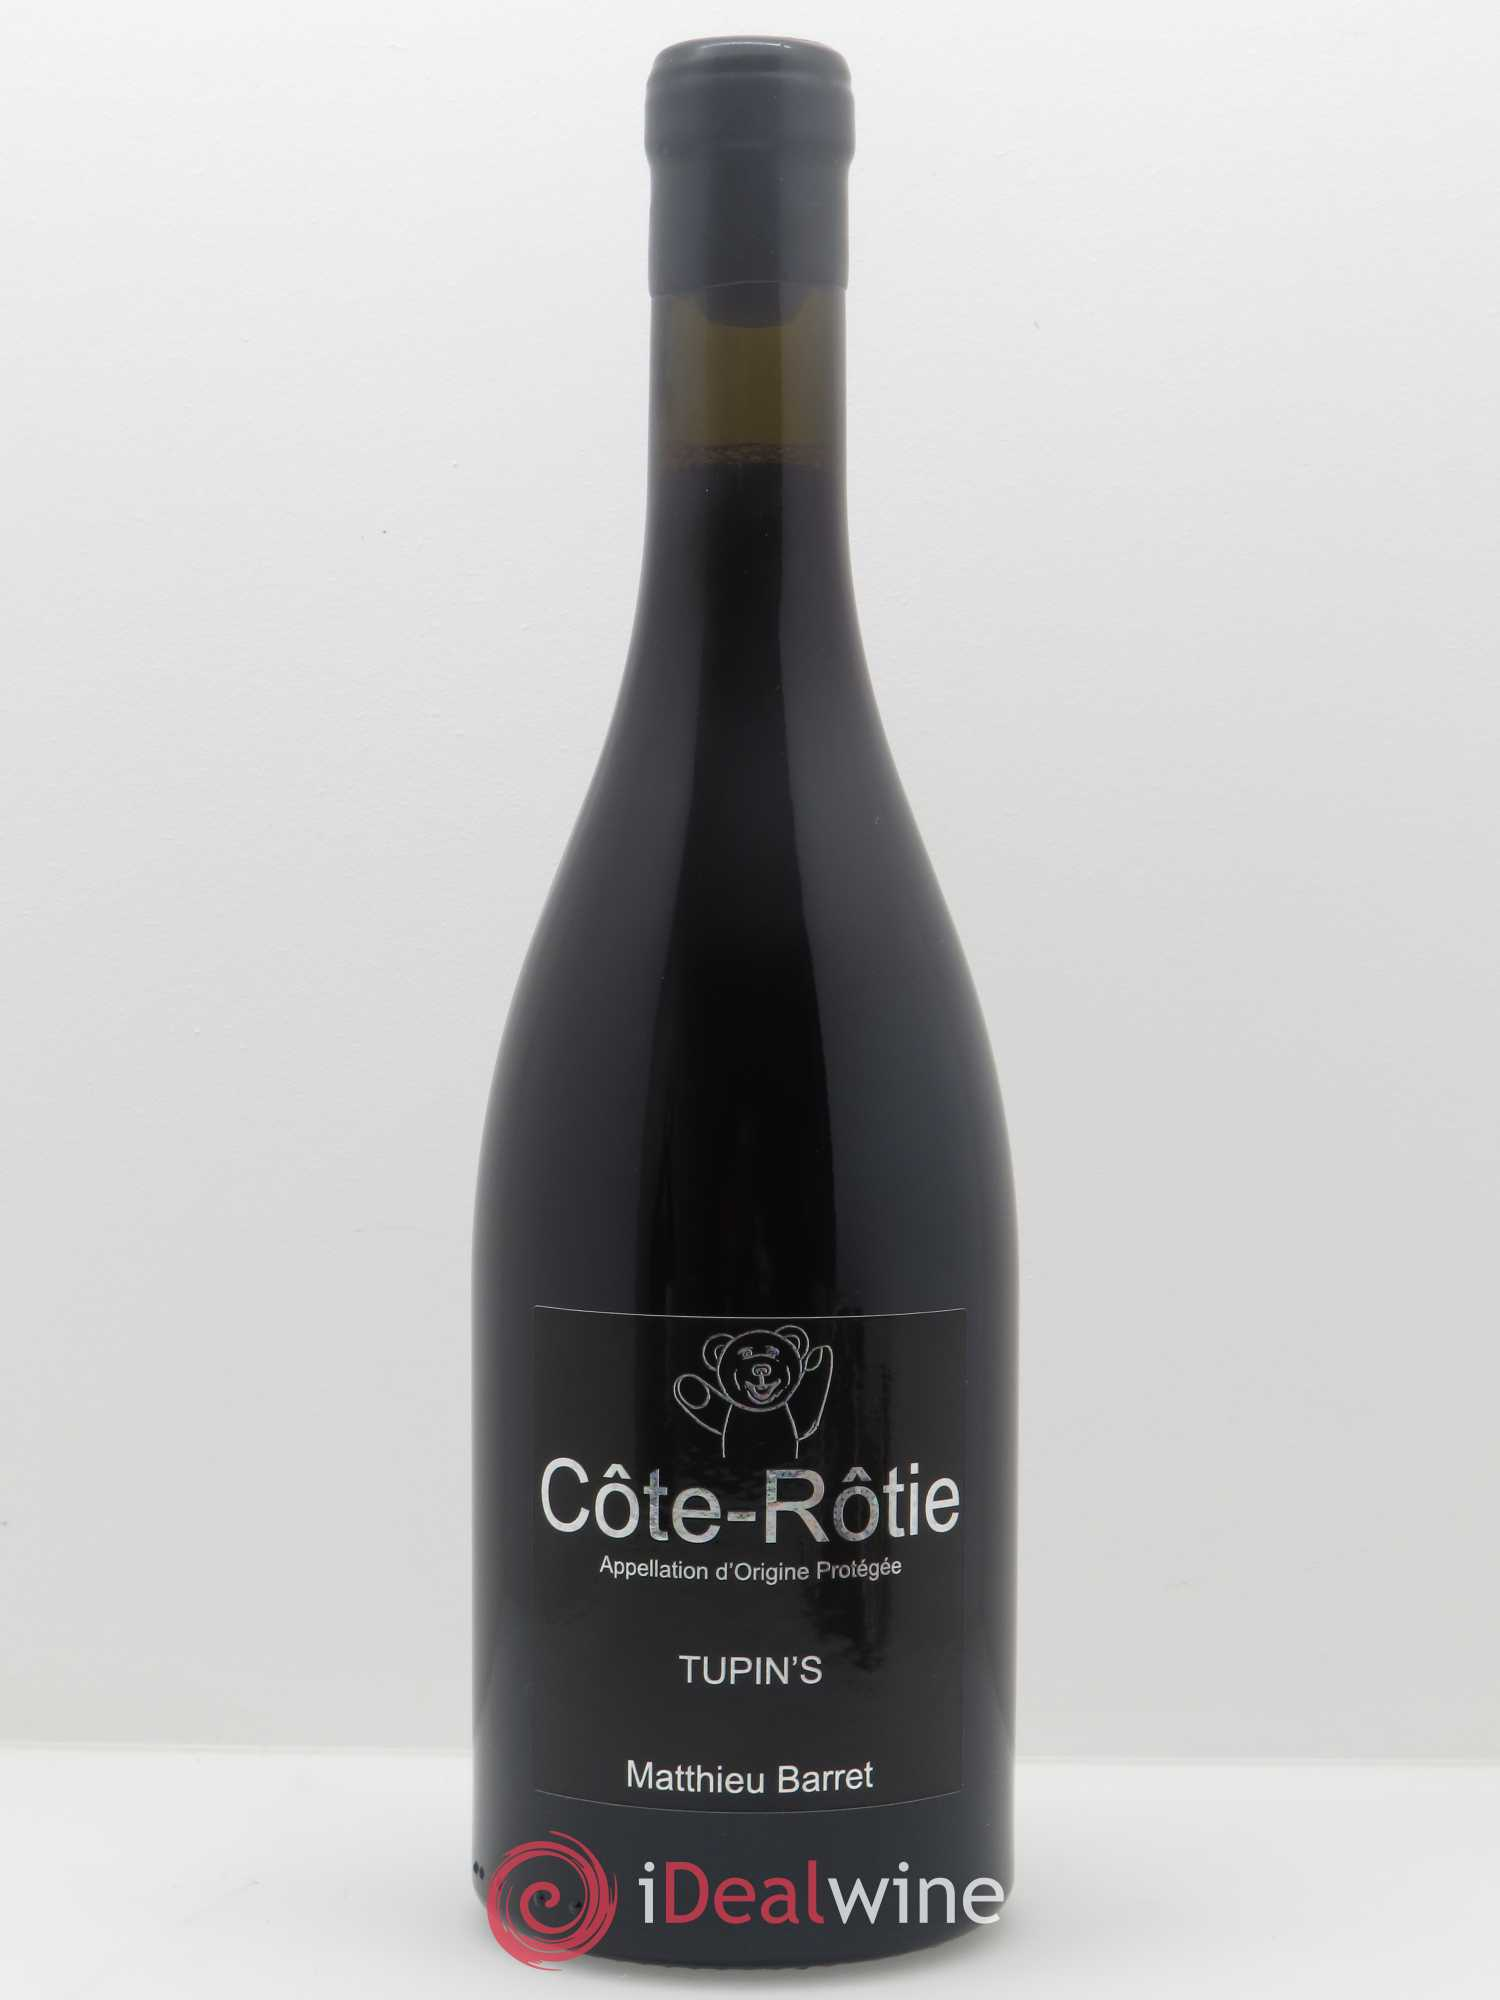 Côte-Rôtie Tupin's Coulet (Domaine du) - Matthieu Barret  2017 - Lot of 1 Bottle